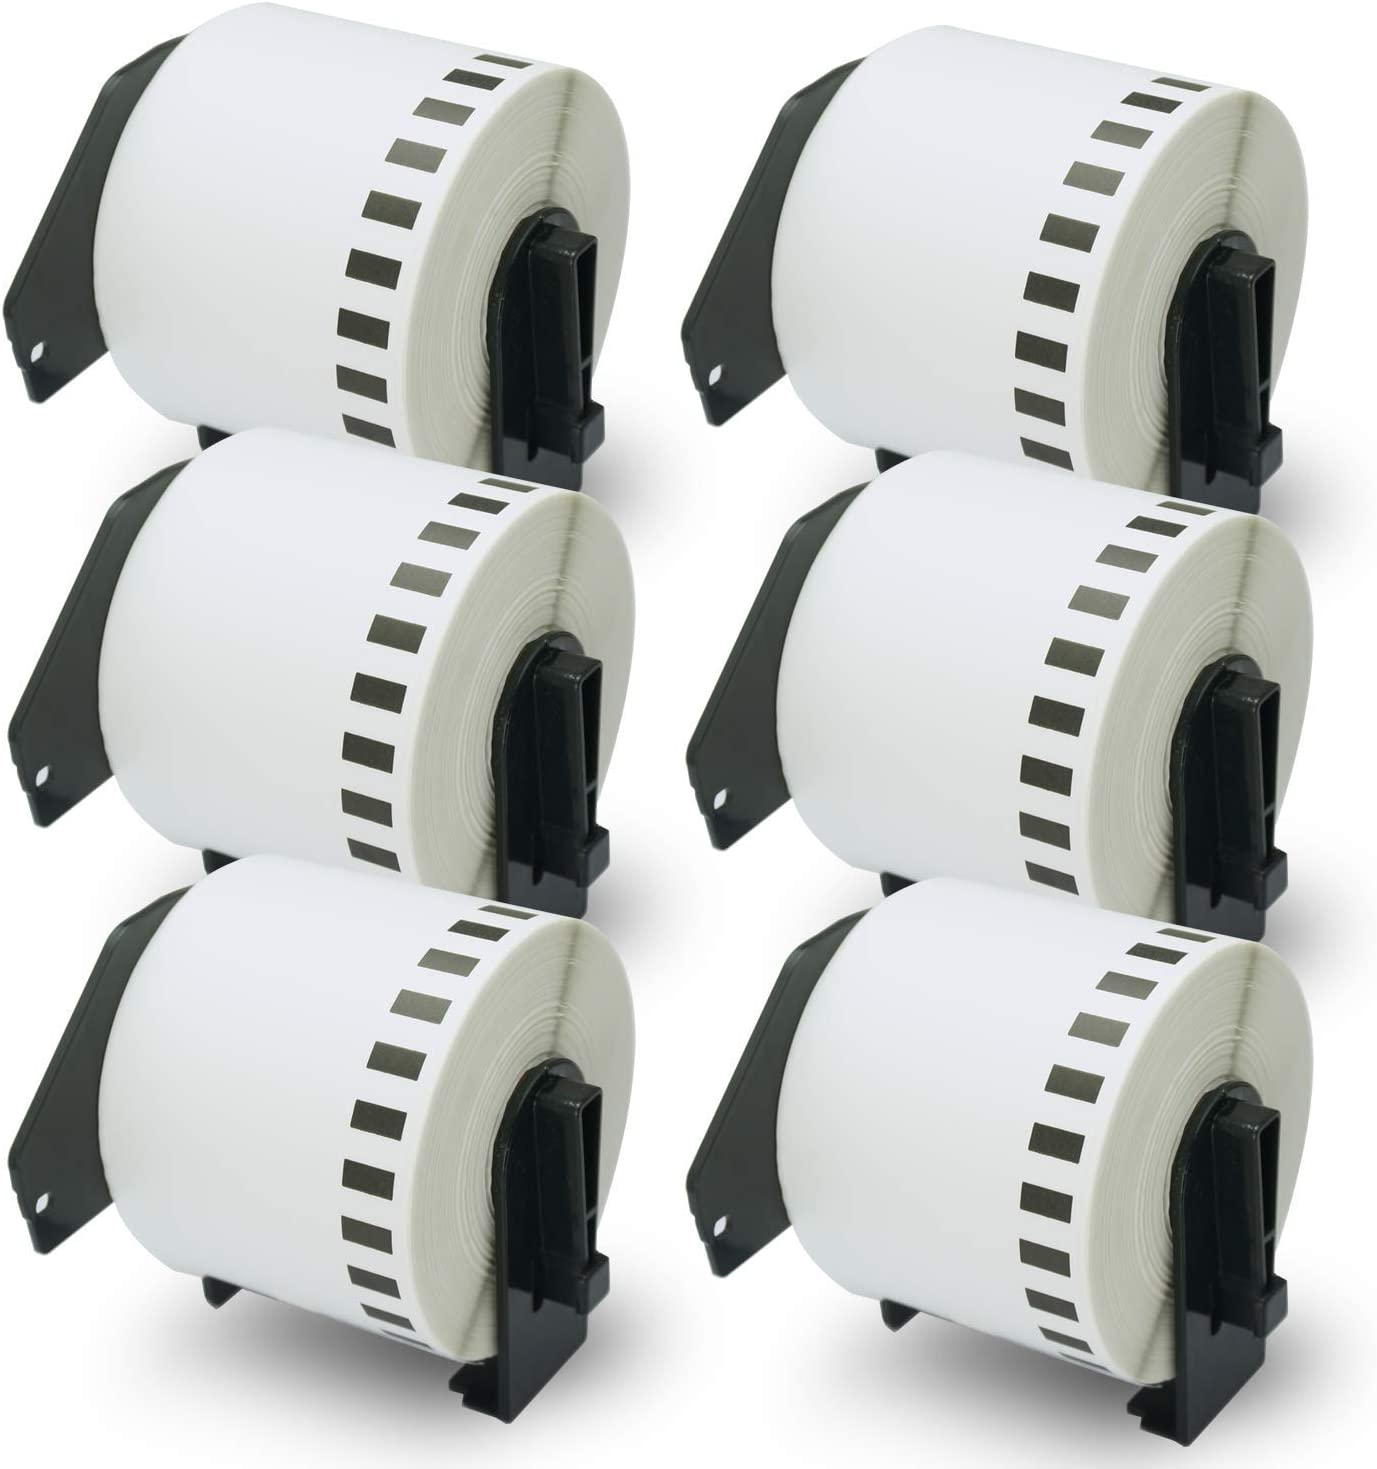 20 x Brother Compatible DK-22205 Printer Labels 62mm Roll+Spool for  QL-710W